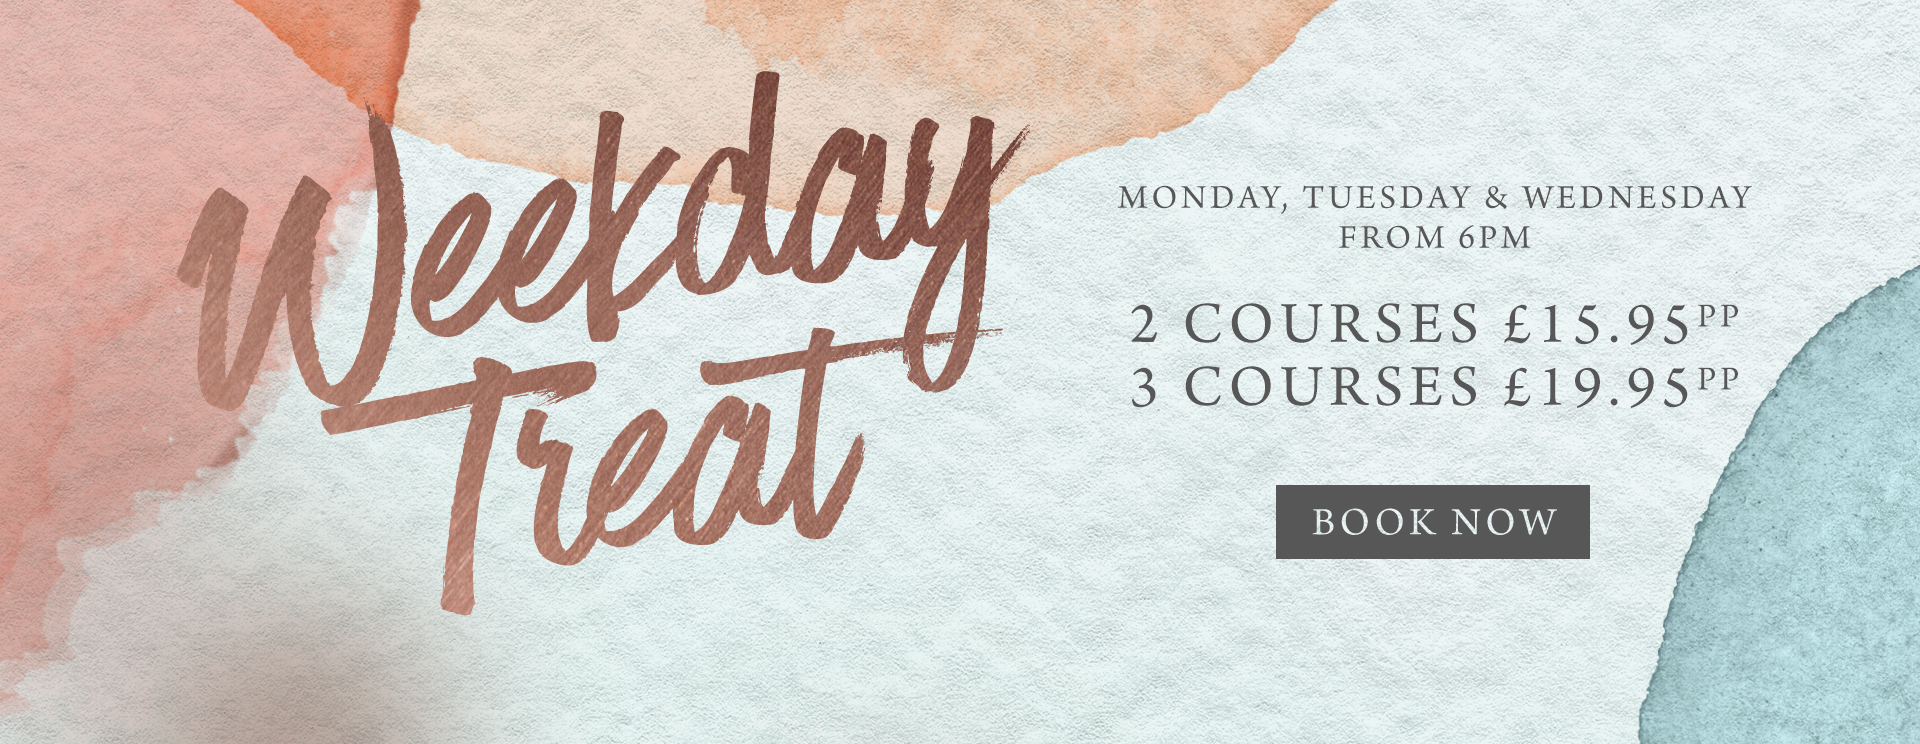 Weekday treat at The Rams Head - Book now